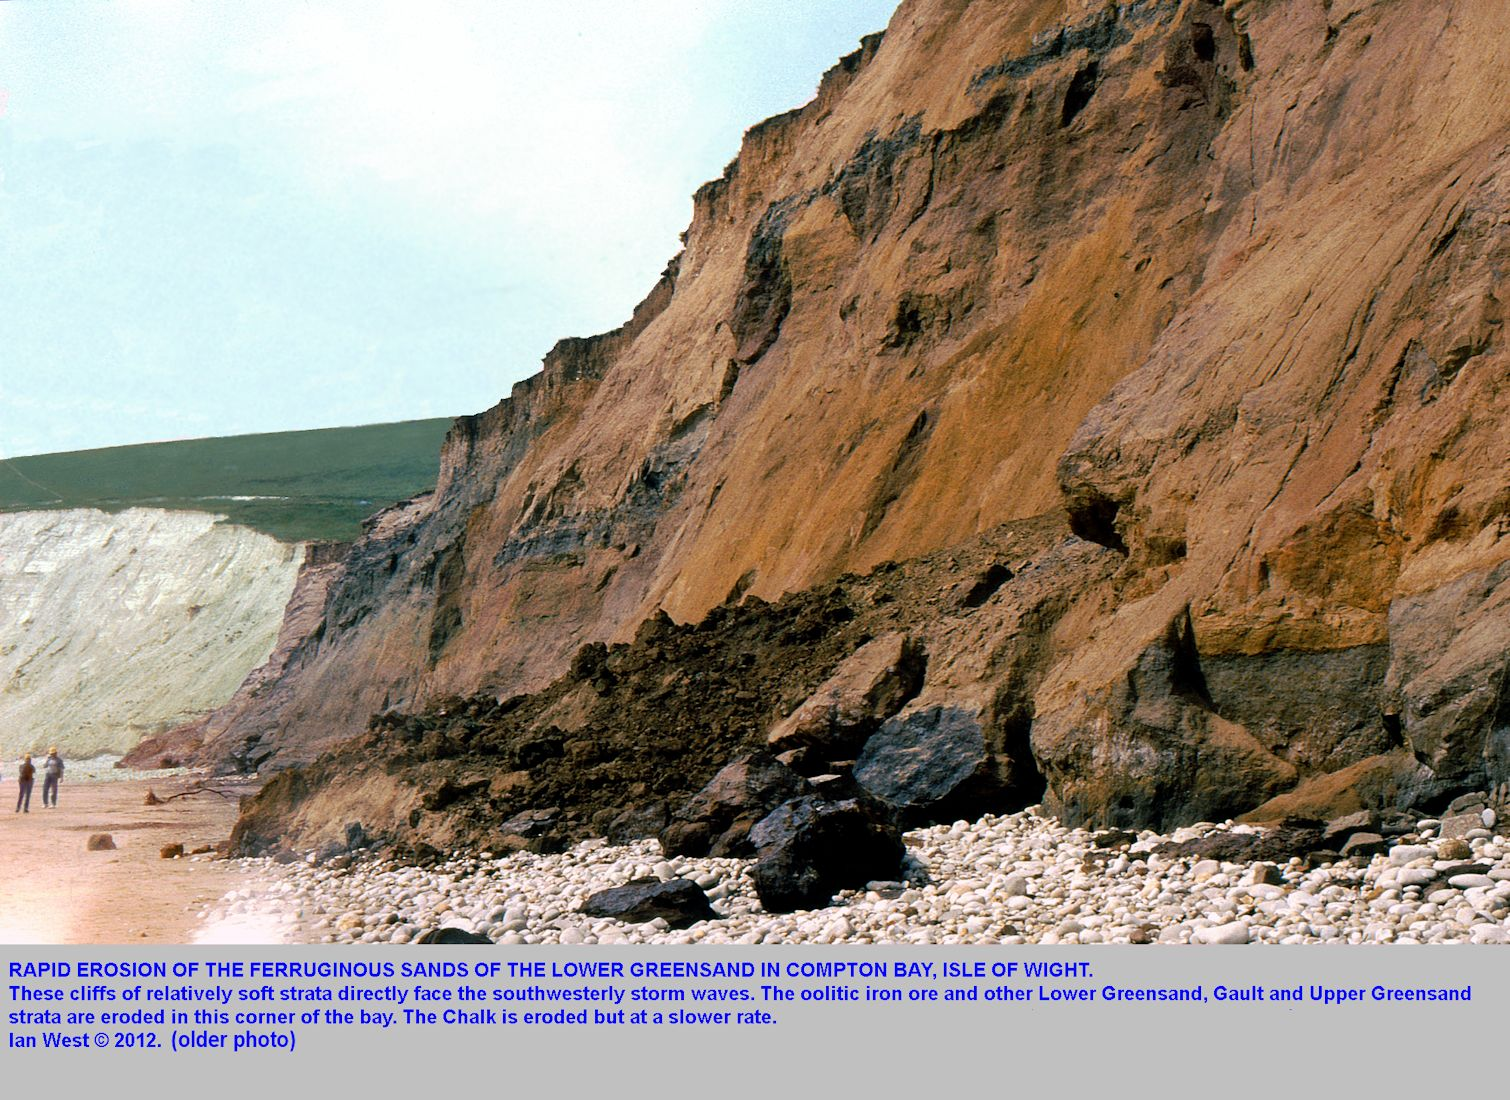 The Ferruginous Sands Formation of the Lower Greensand undergoing rapid erosion at Compton Bay, Isle of Wight, seen from the shore